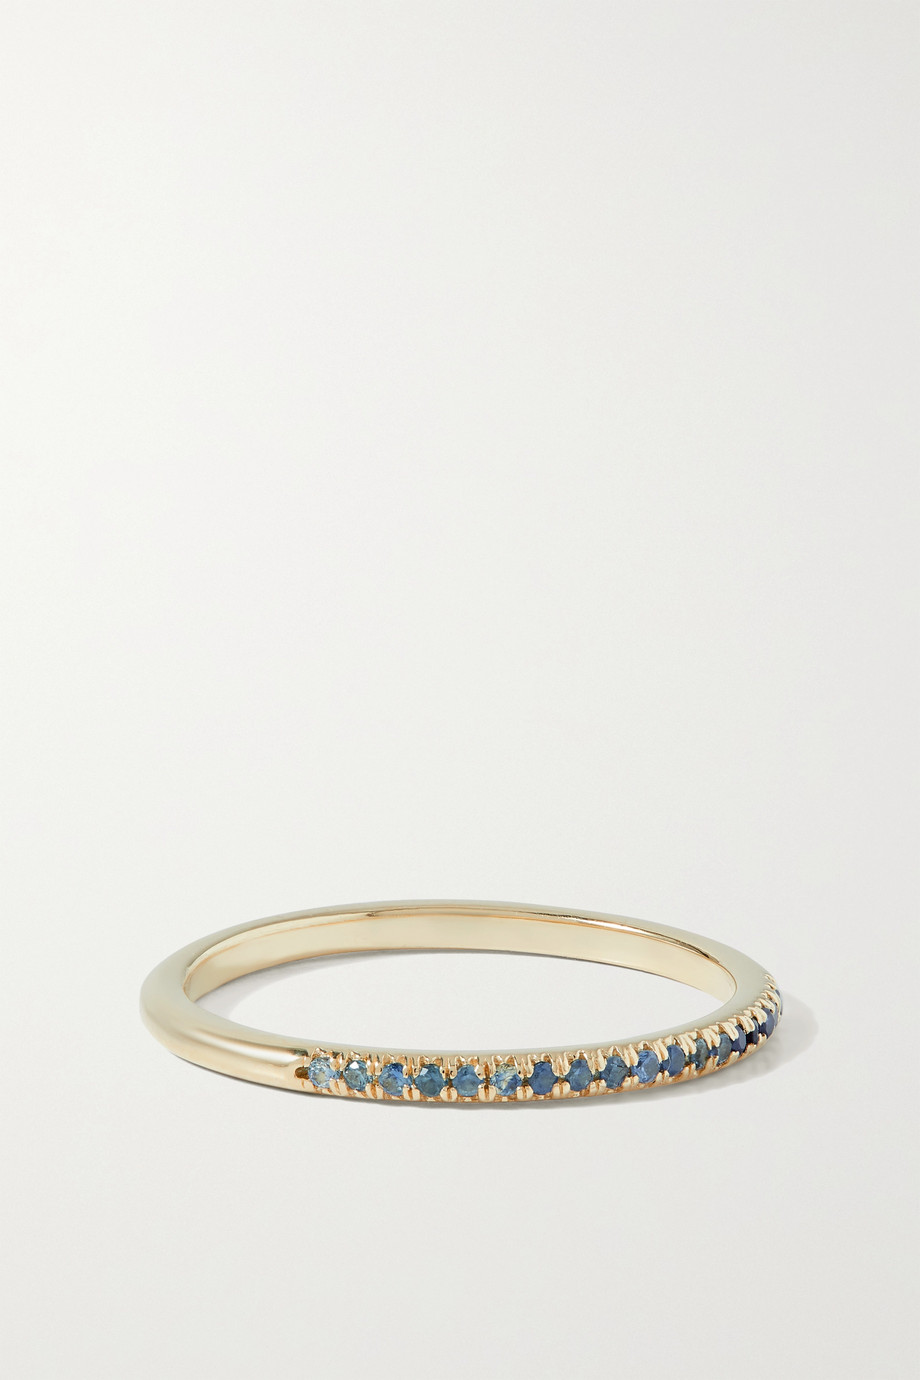 STONE AND STRAND Bague en or 14 carats (585/1000) et saphirs